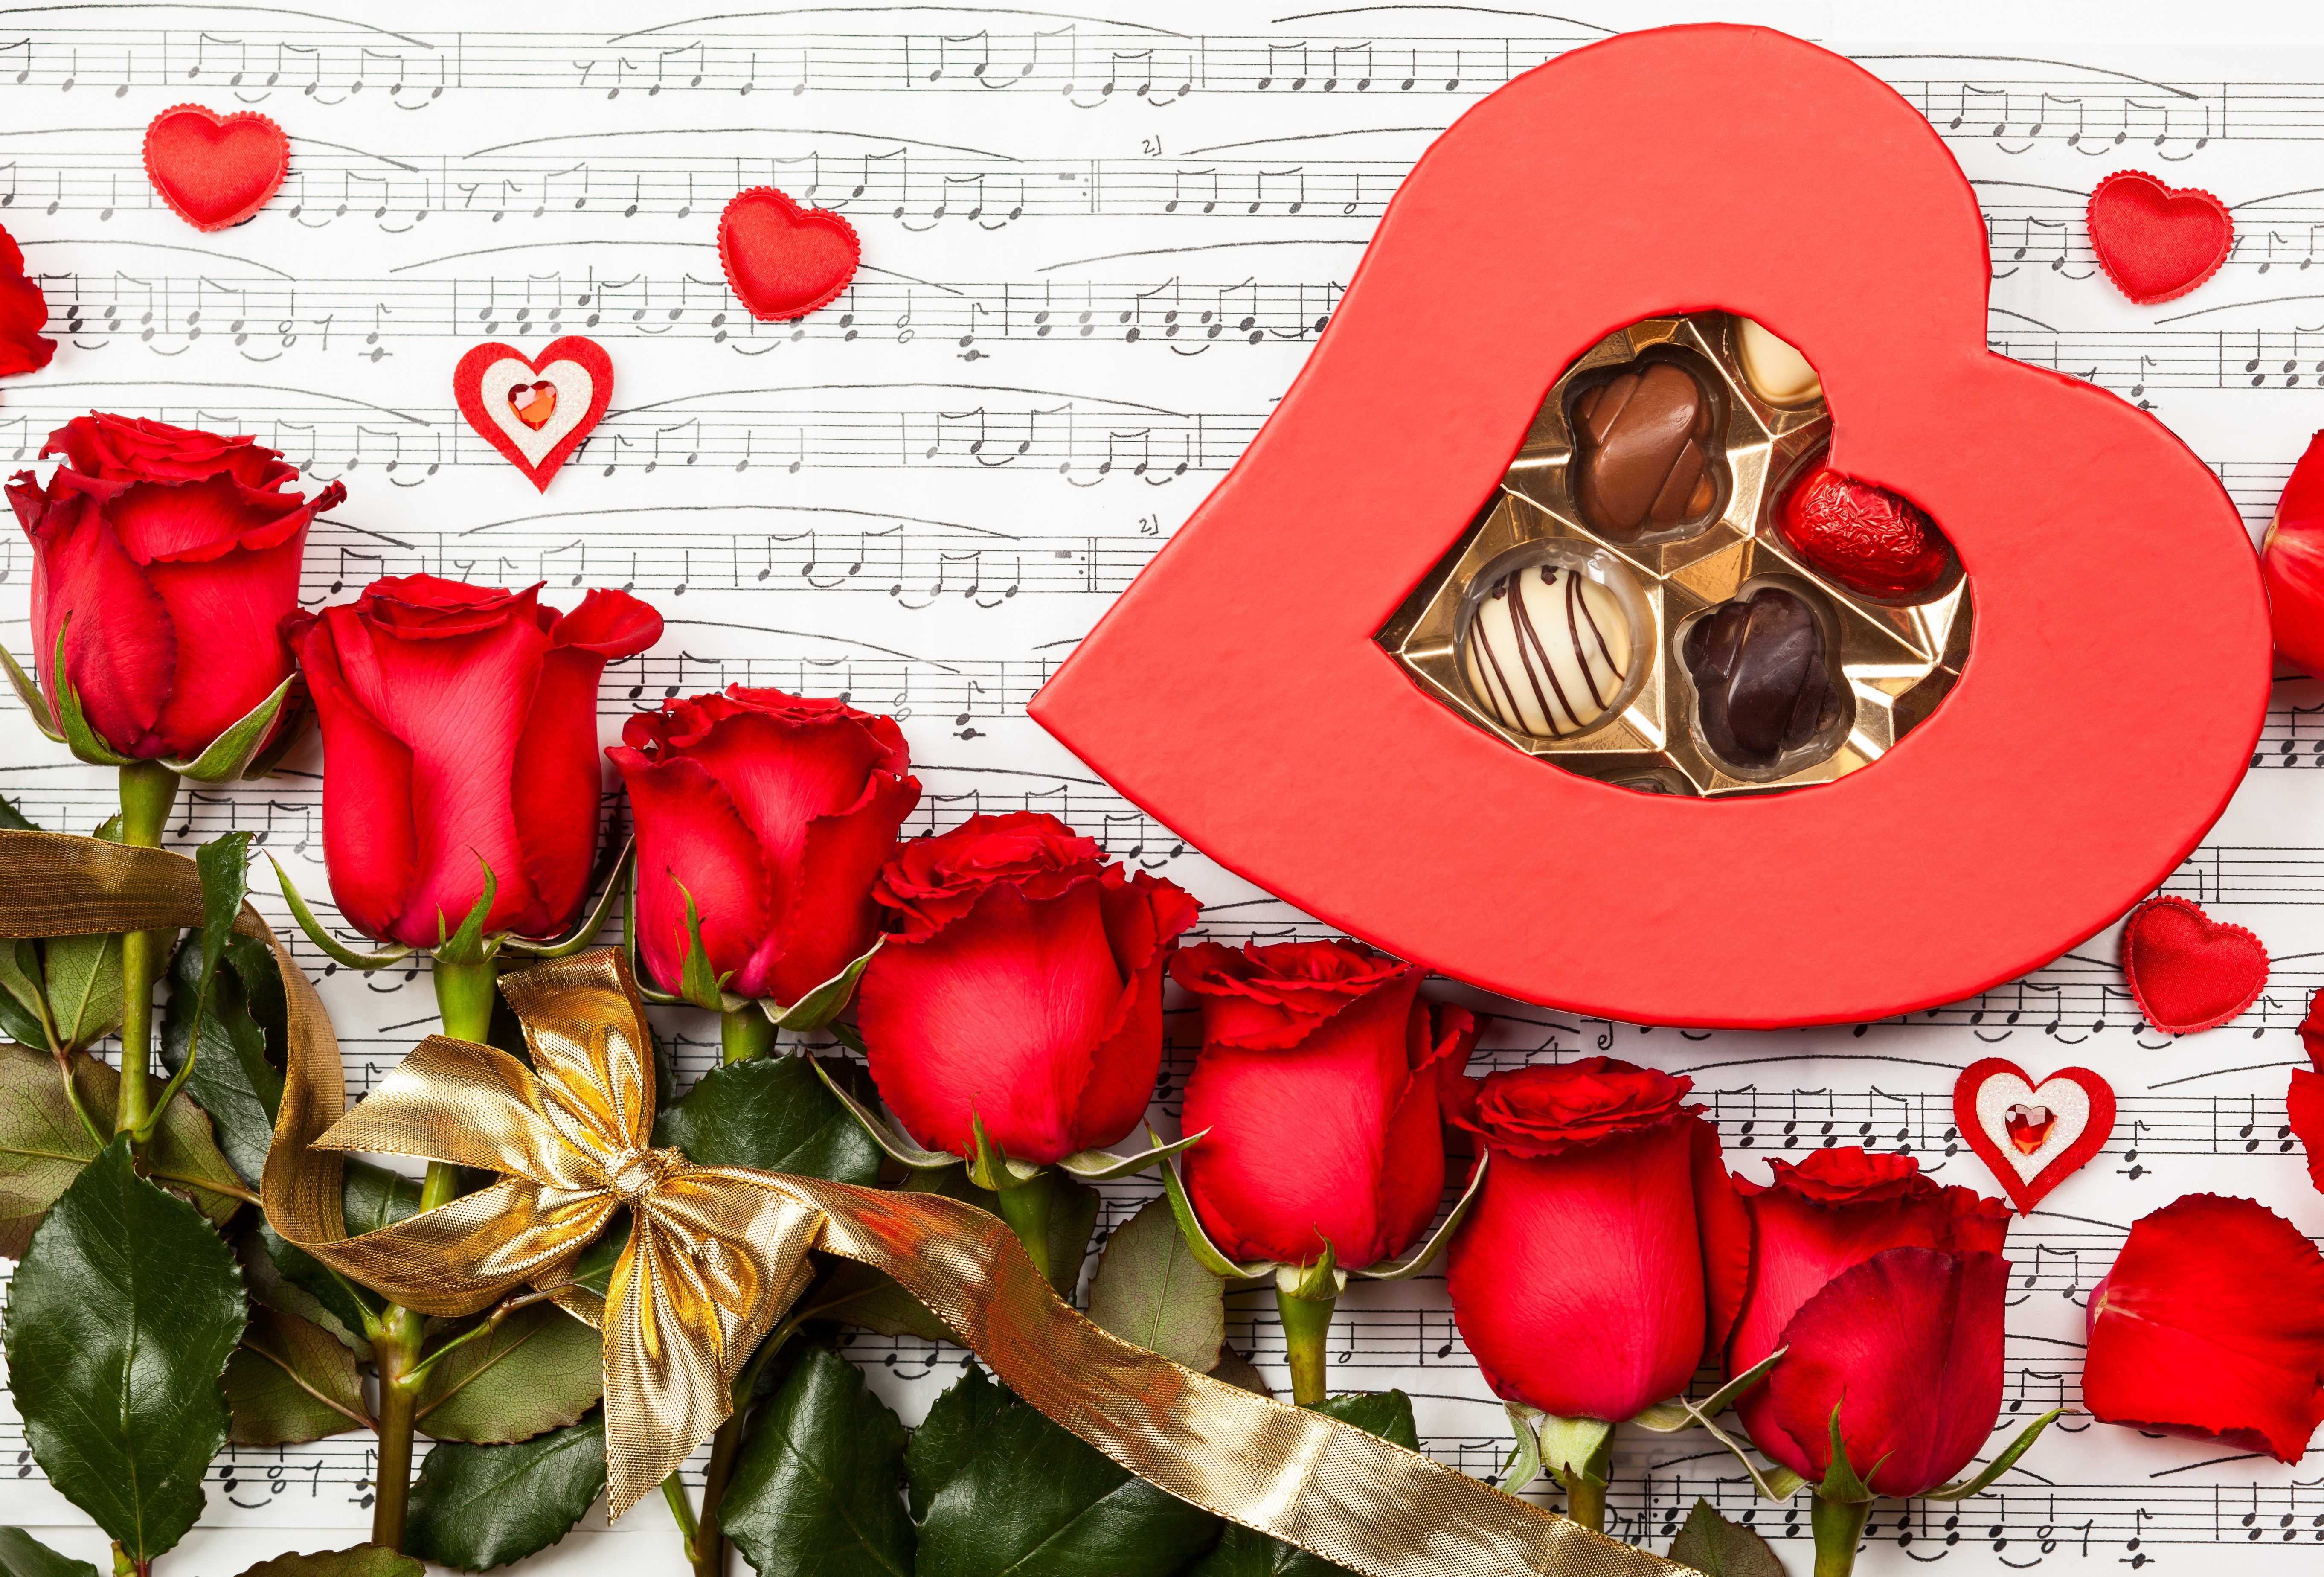 red rose i love you wallpaper - photo #35